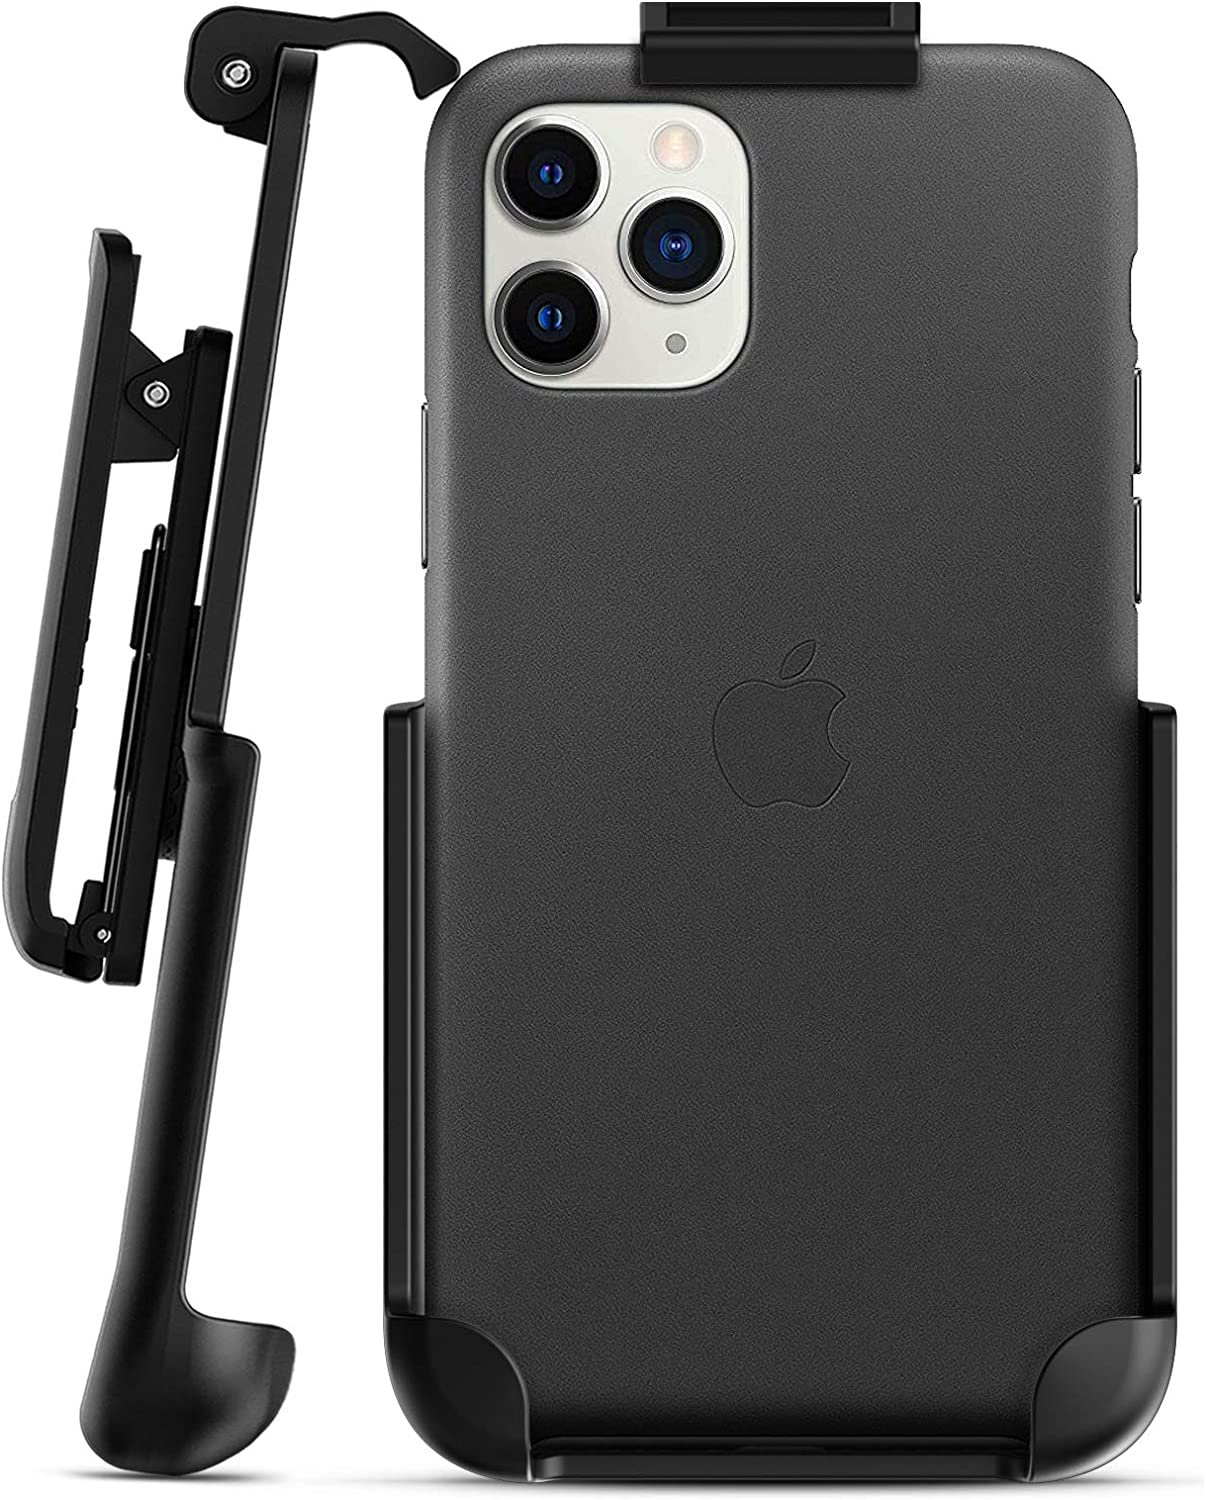 Encased Belt Clip Holster for Apple Leather Case - iPhone 11 Pro (Holster Only - Case is not Included)